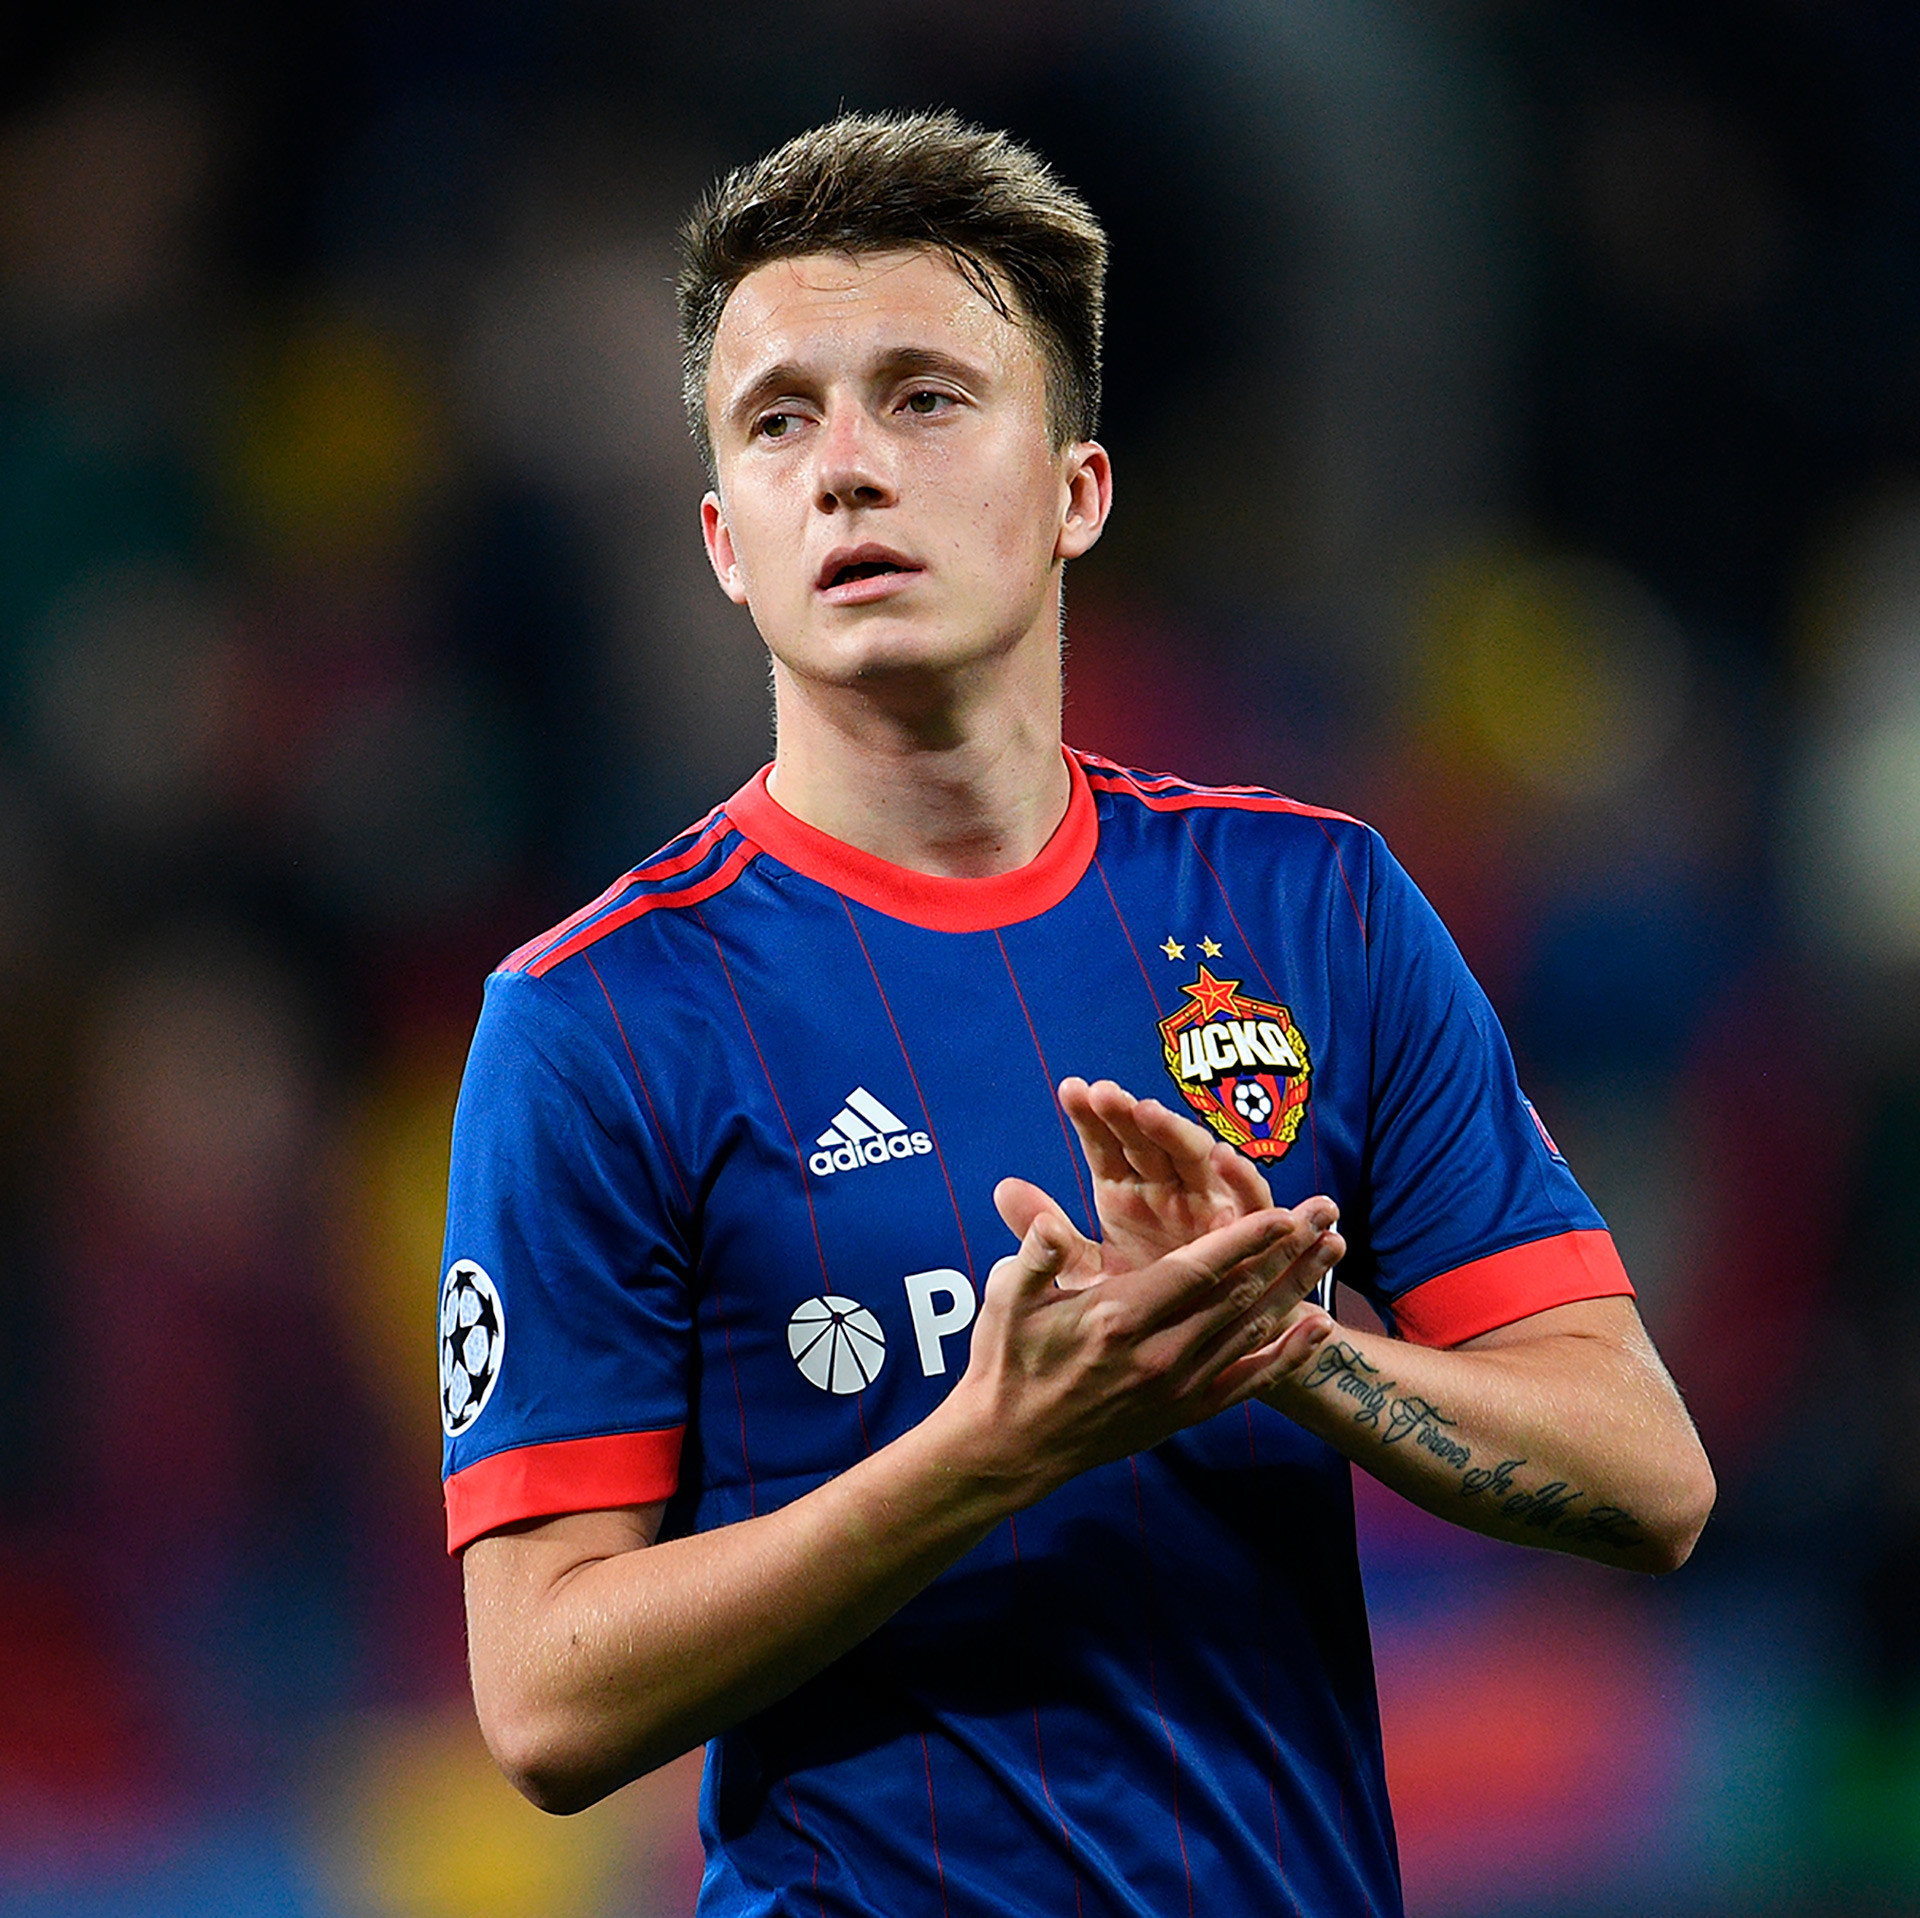 CSKA Moscow midfielder Aleksandr Golovin, who has previously been linked with Arsenal